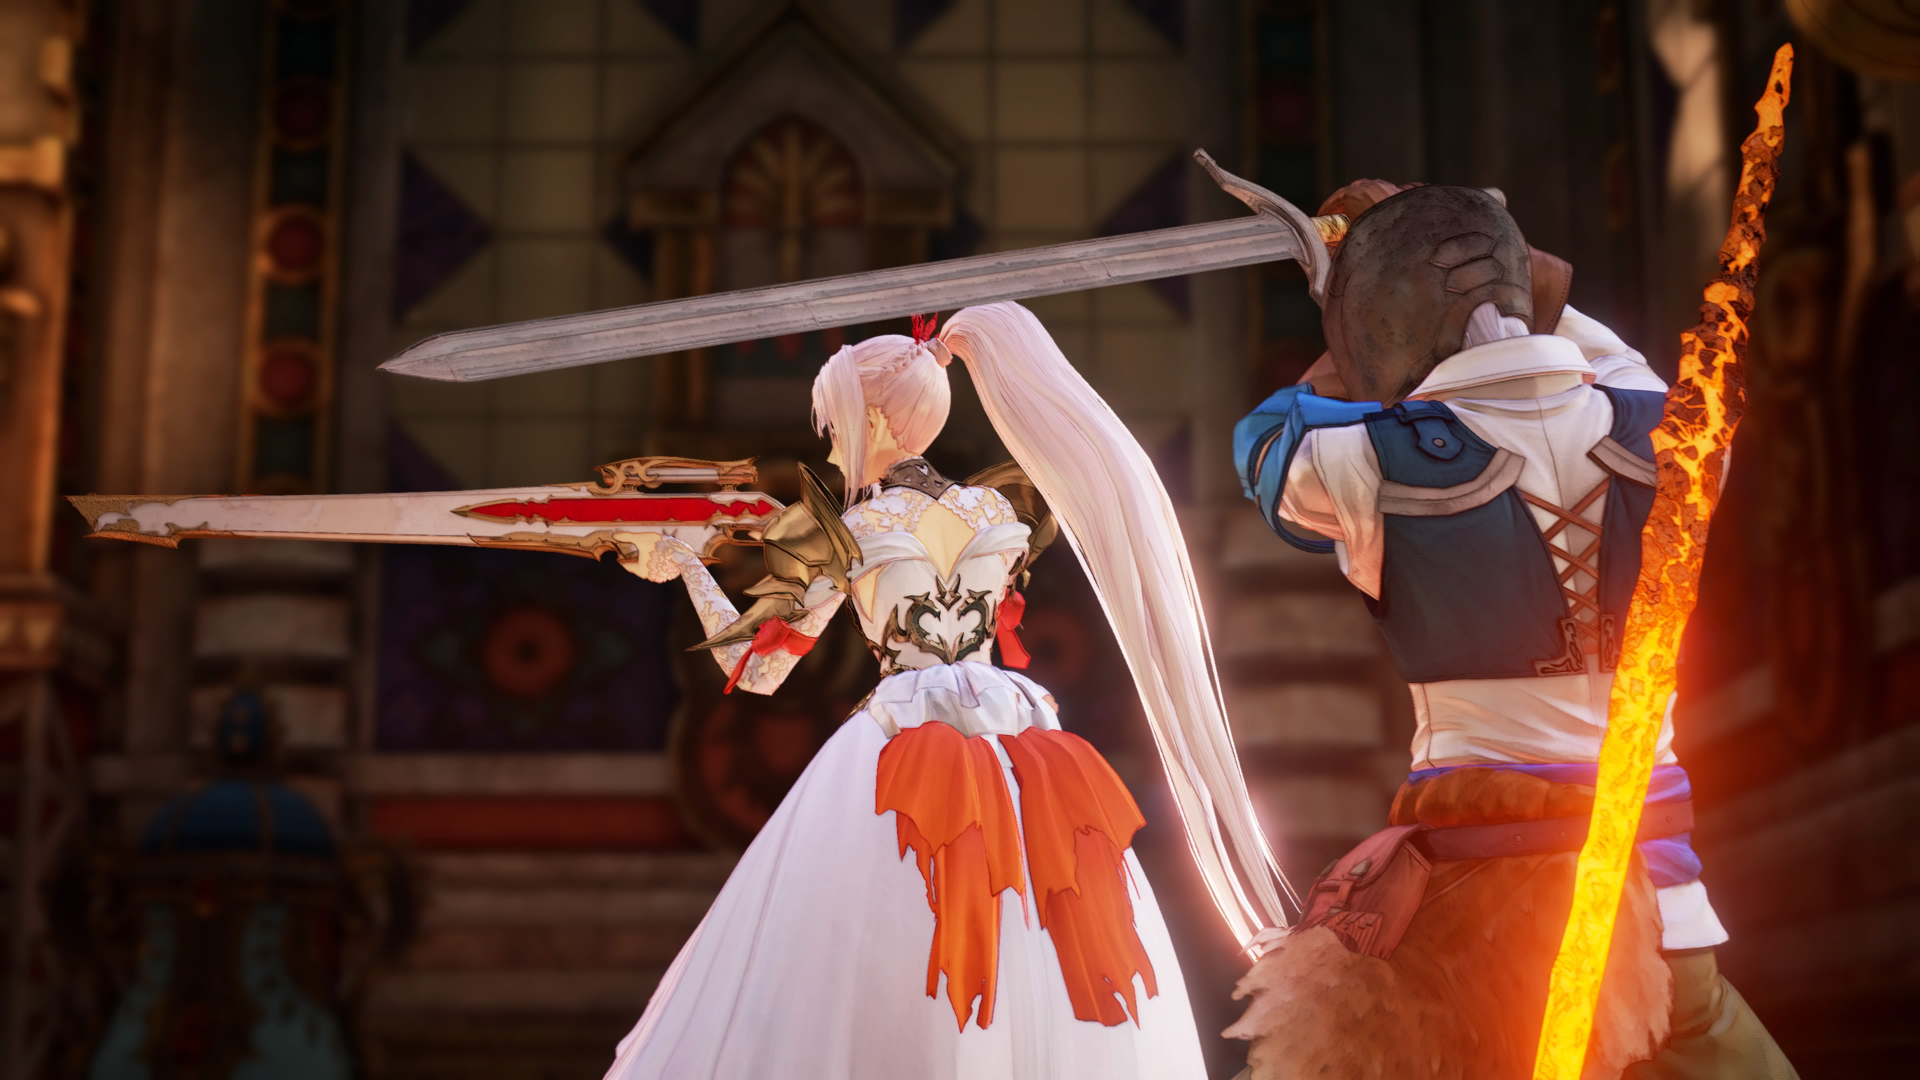 tales of arise switch characters